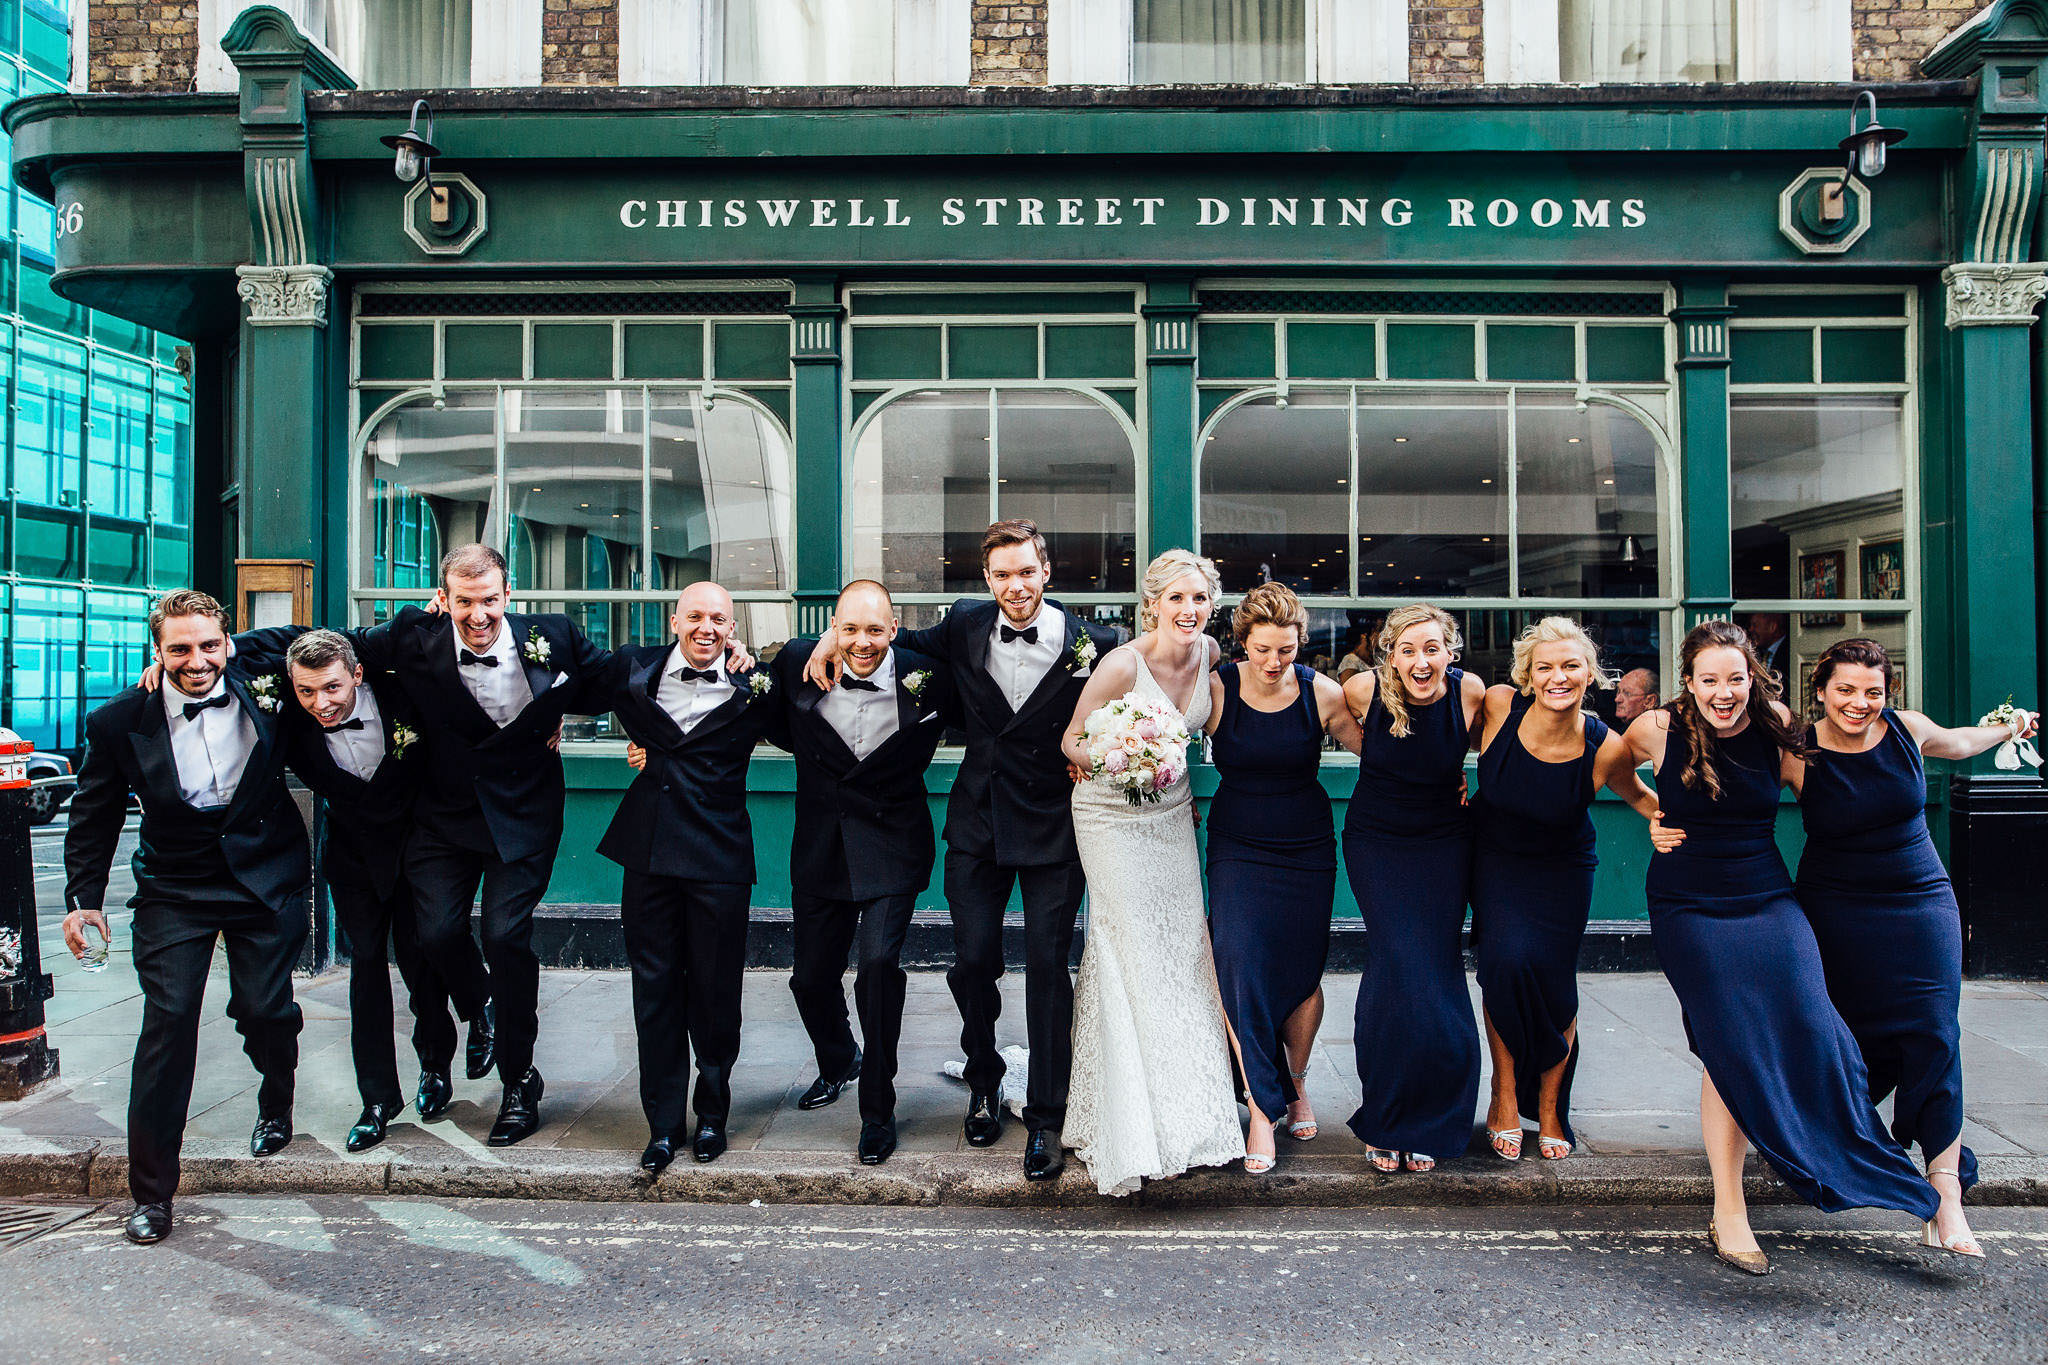 chiswell street dining rooms wedding photos